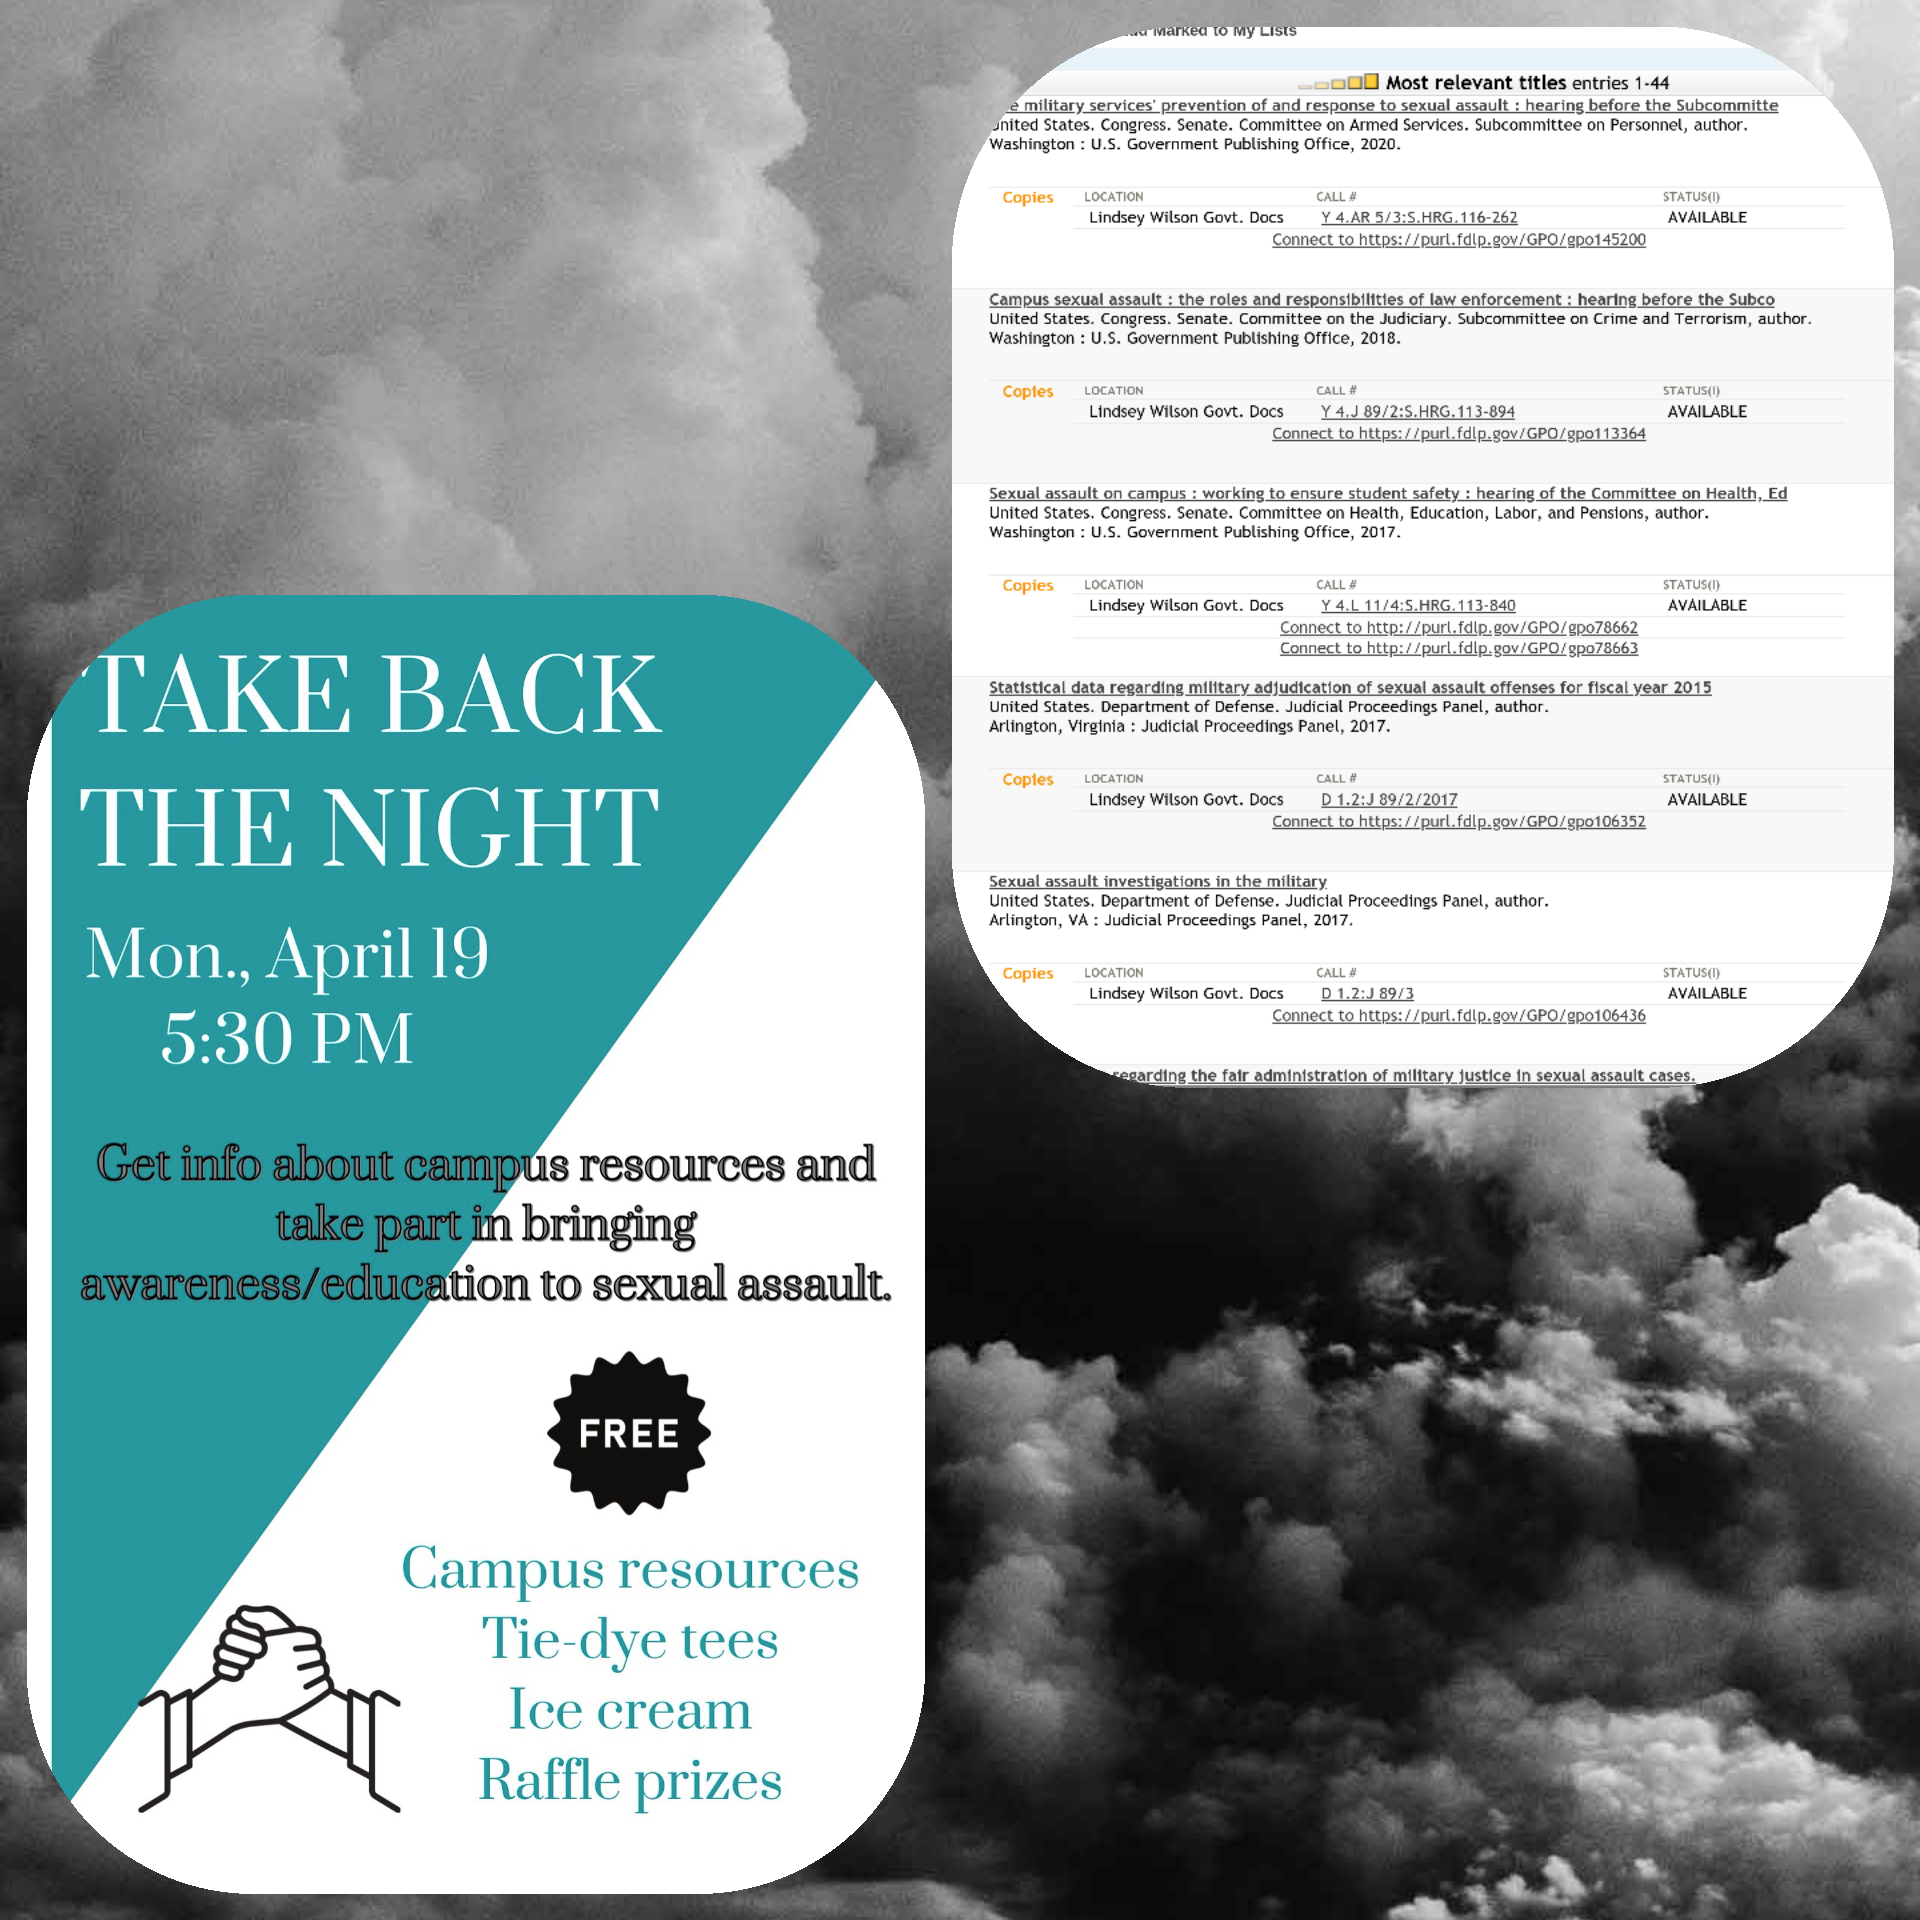 April is Sexual Assault Awareness Month. Picture of some of our lonline resources in our catalog along with the SAB poster advertising Take back the night for April 19th at 5:30pm